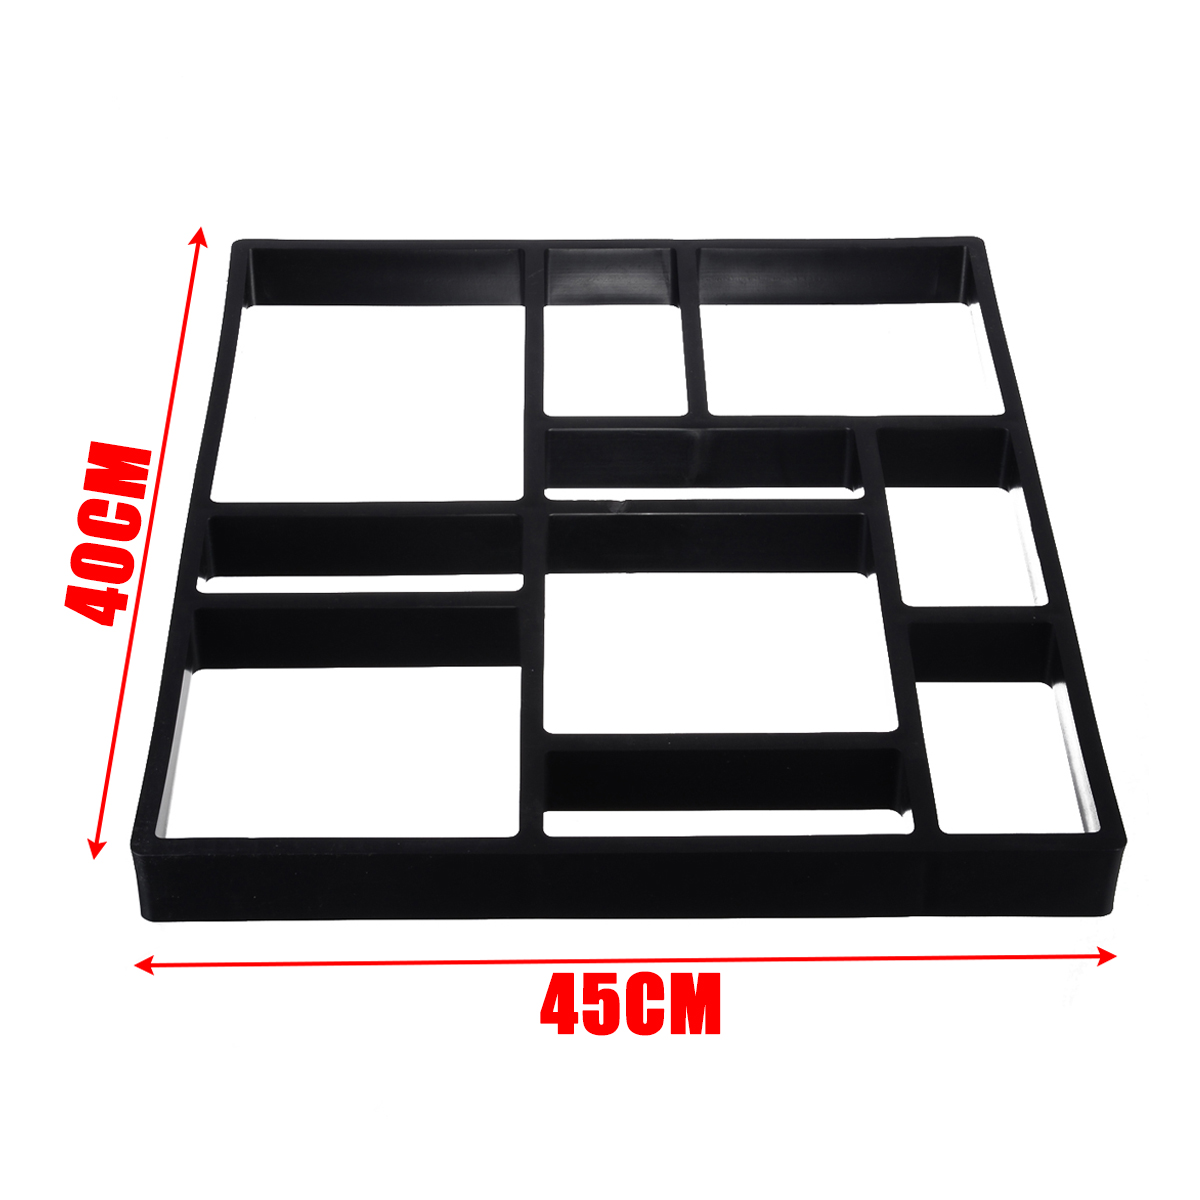 Image 4 - DIY Garden Pavement Mold Garden Walk Pavement Concrete Mould Paving Cement Brick Stone Road Path Maker 45*40cm-in Garden Floor Boards from Home & Garden